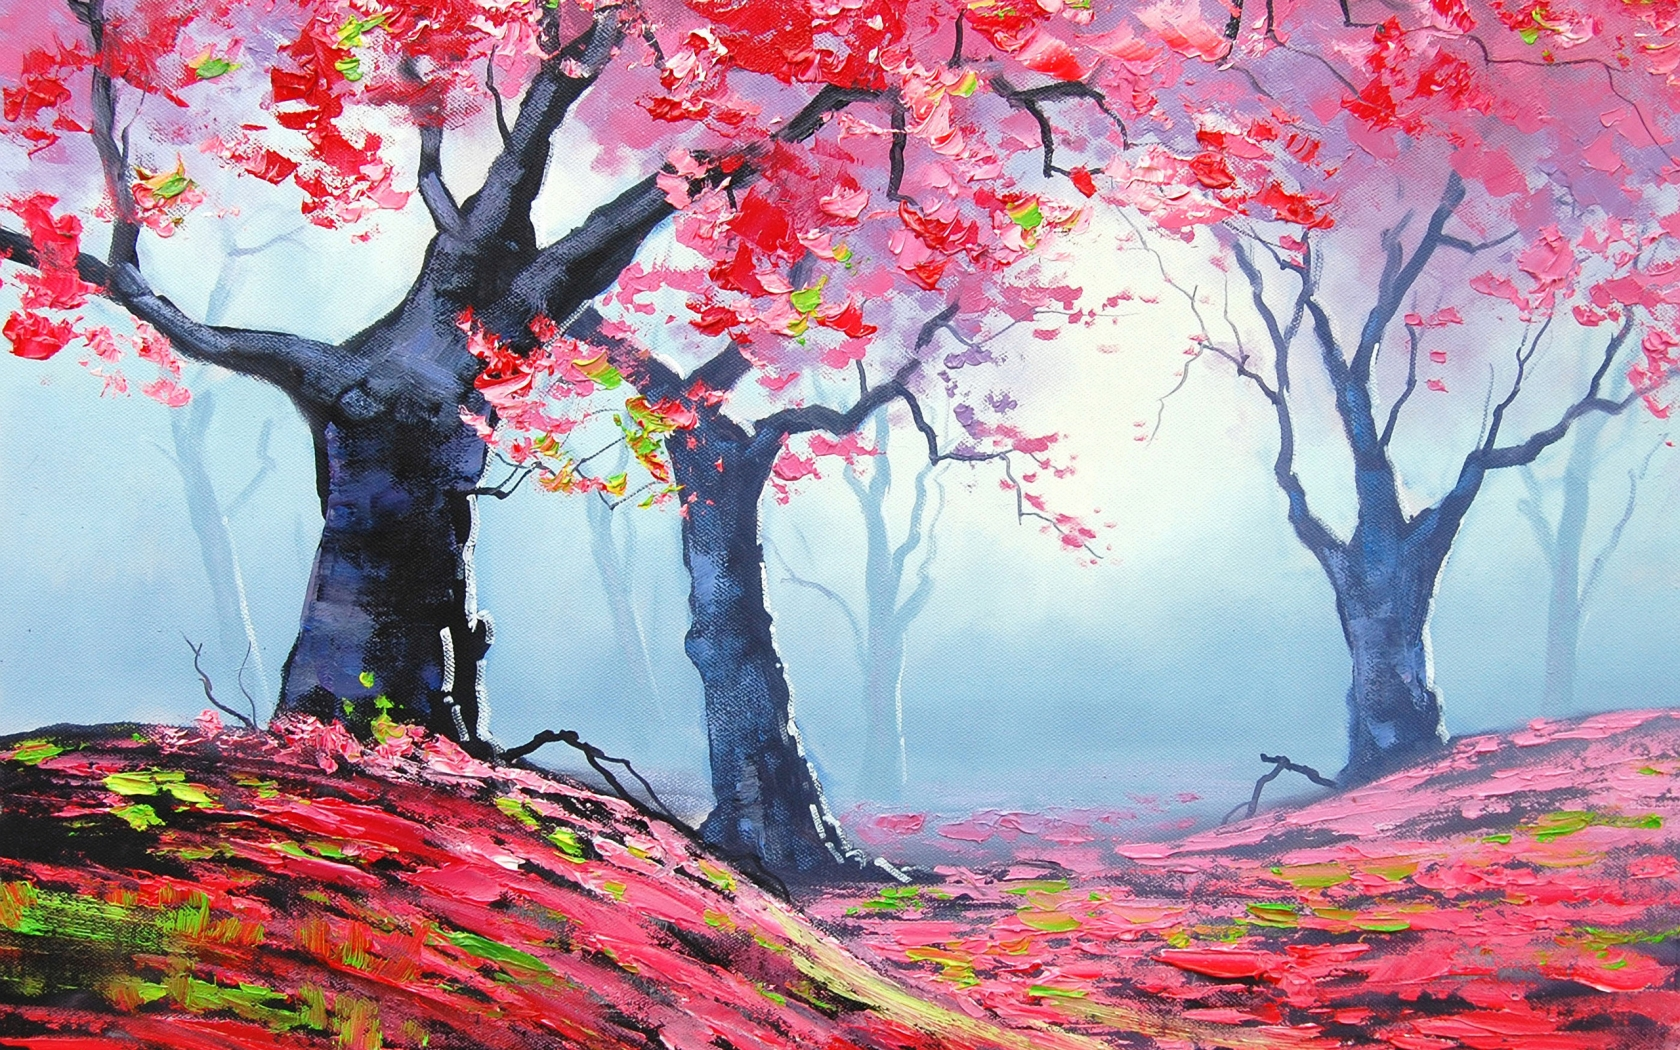 Autumn Red Forest Painting for 1680 x 1050 widescreen resolution